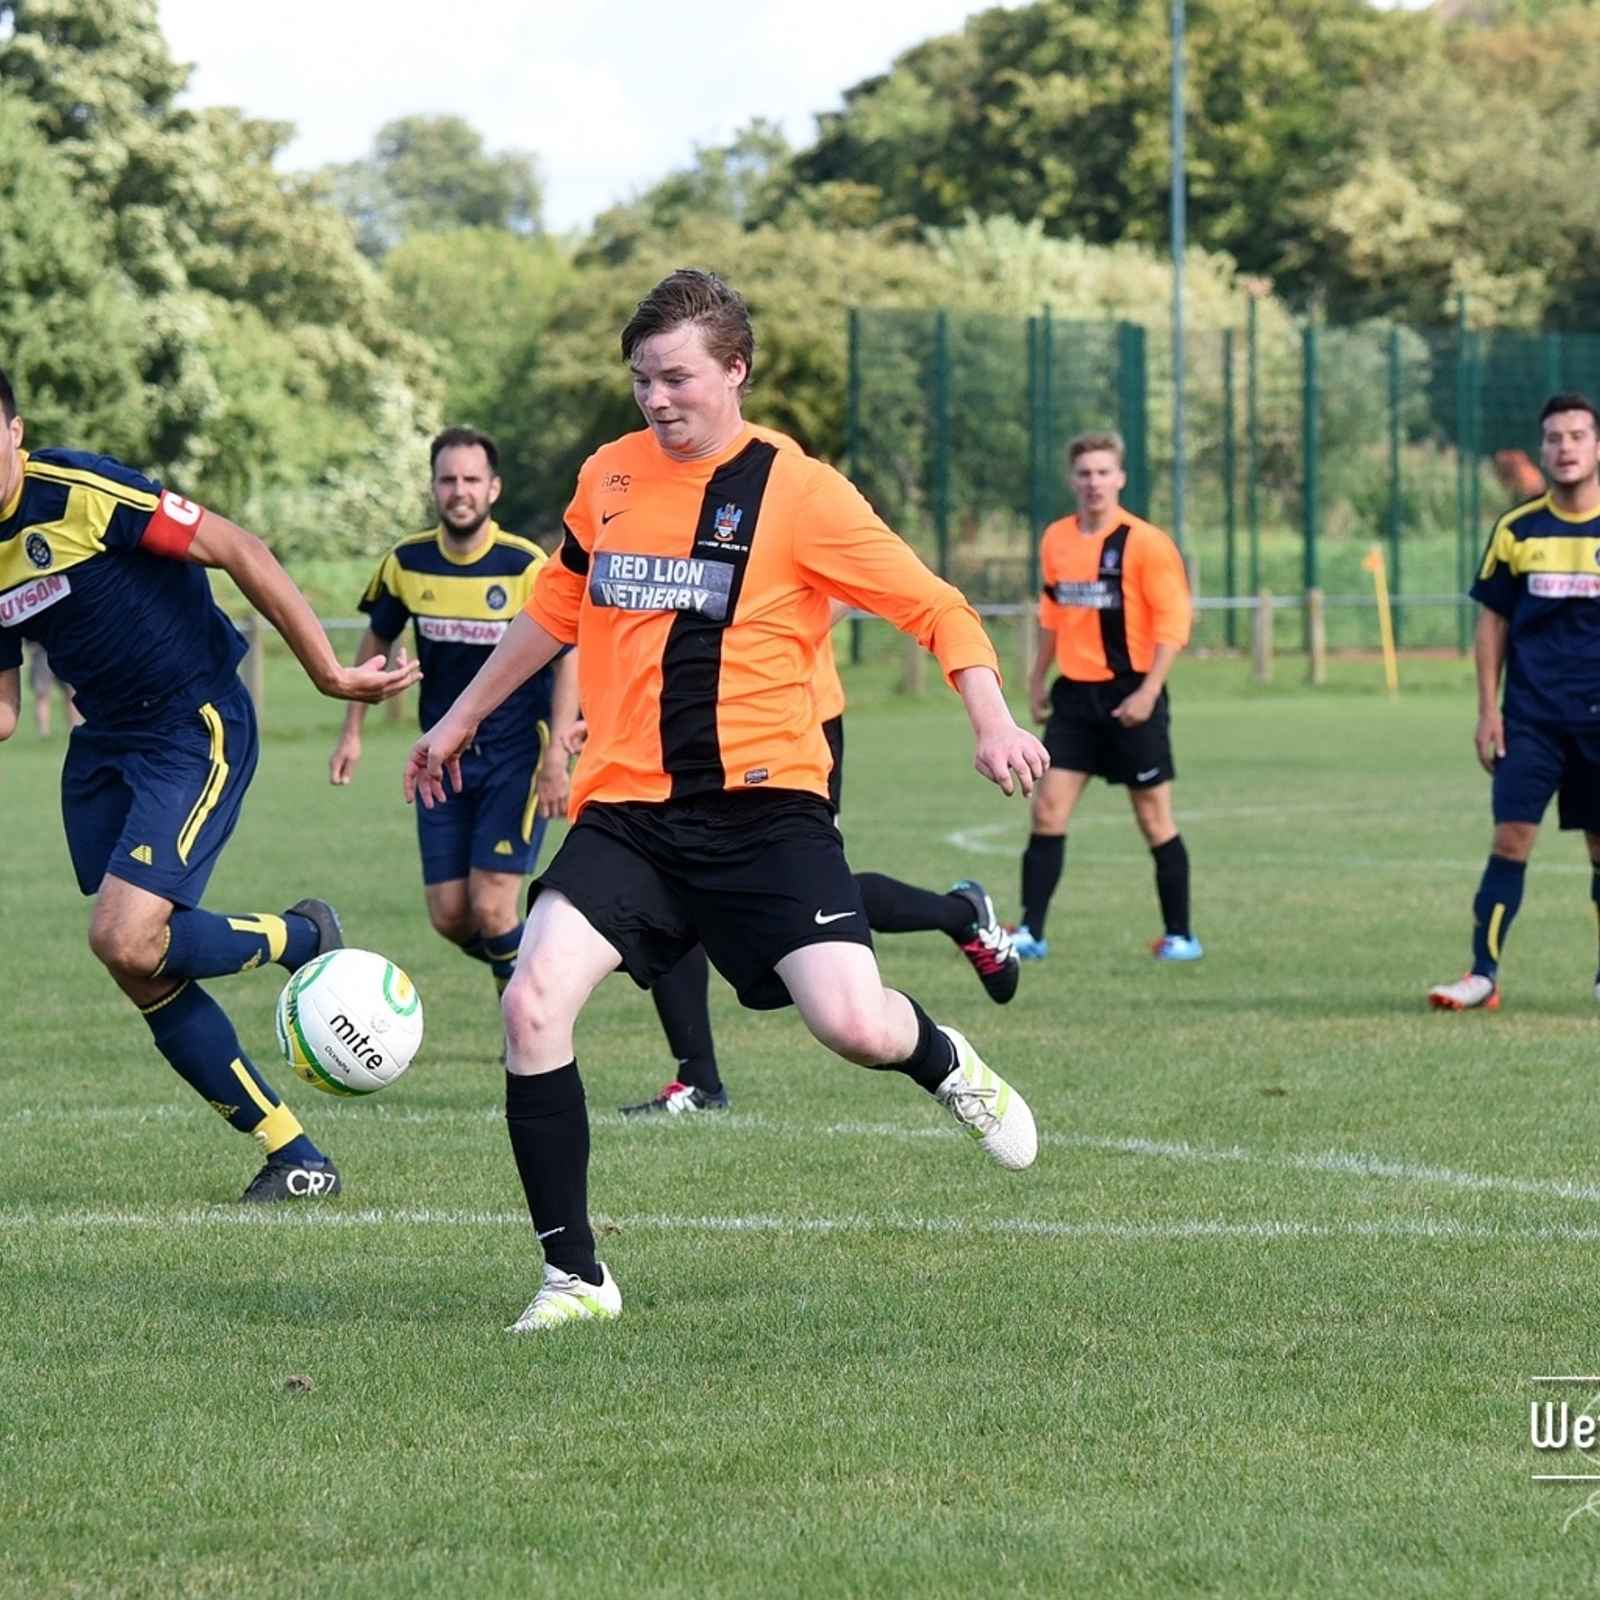 REPORT: Wetherby Athletic 1 v 2 Sherburn WR